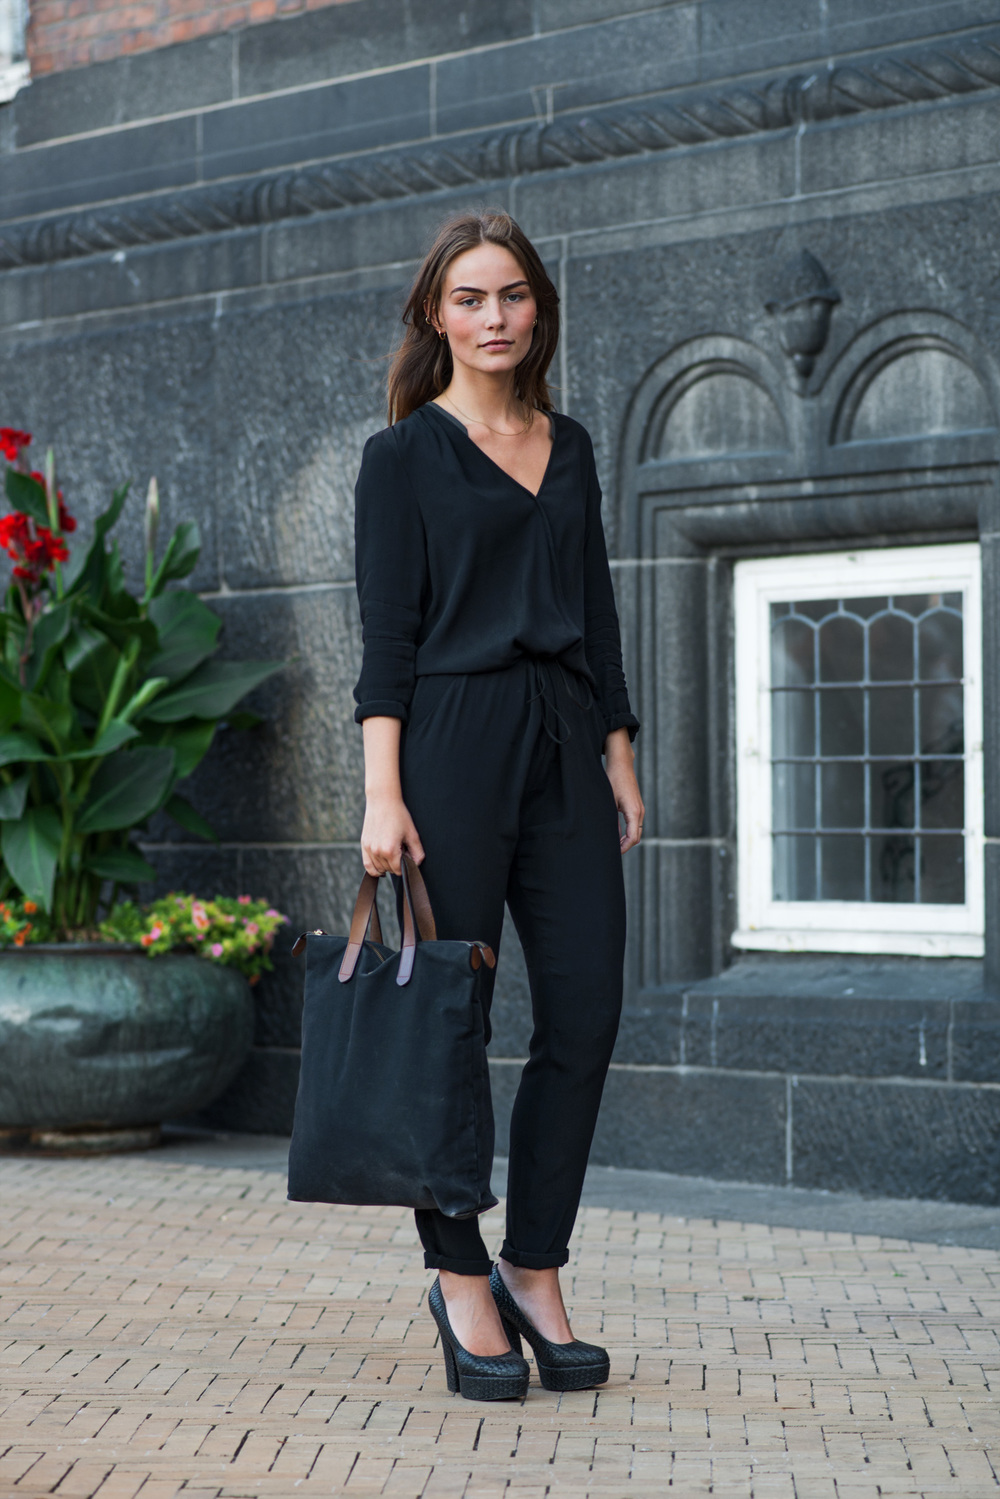 Brow Beat The Locals Street Style From Copenhagen And